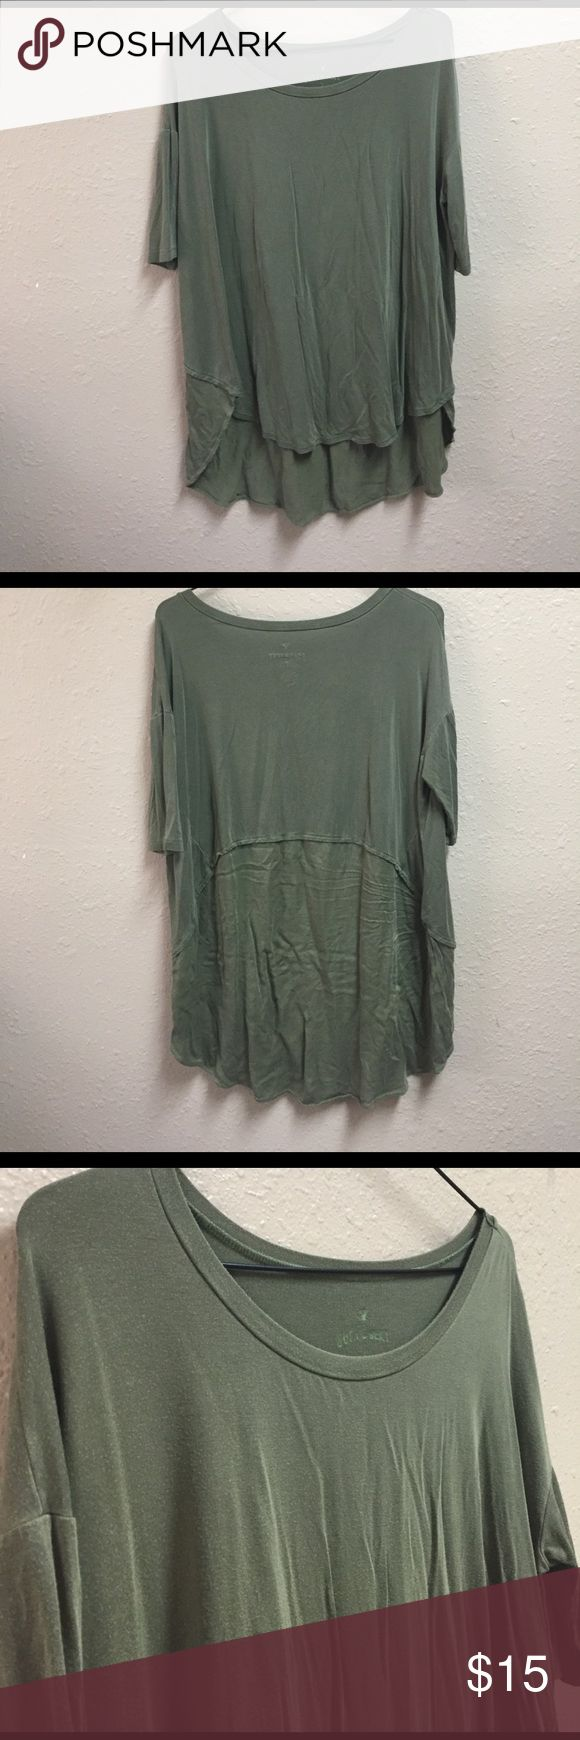 American Eagle Top Extremely soft! Loose fit. Perfect with leggings! American Eagle Outfitters Tops